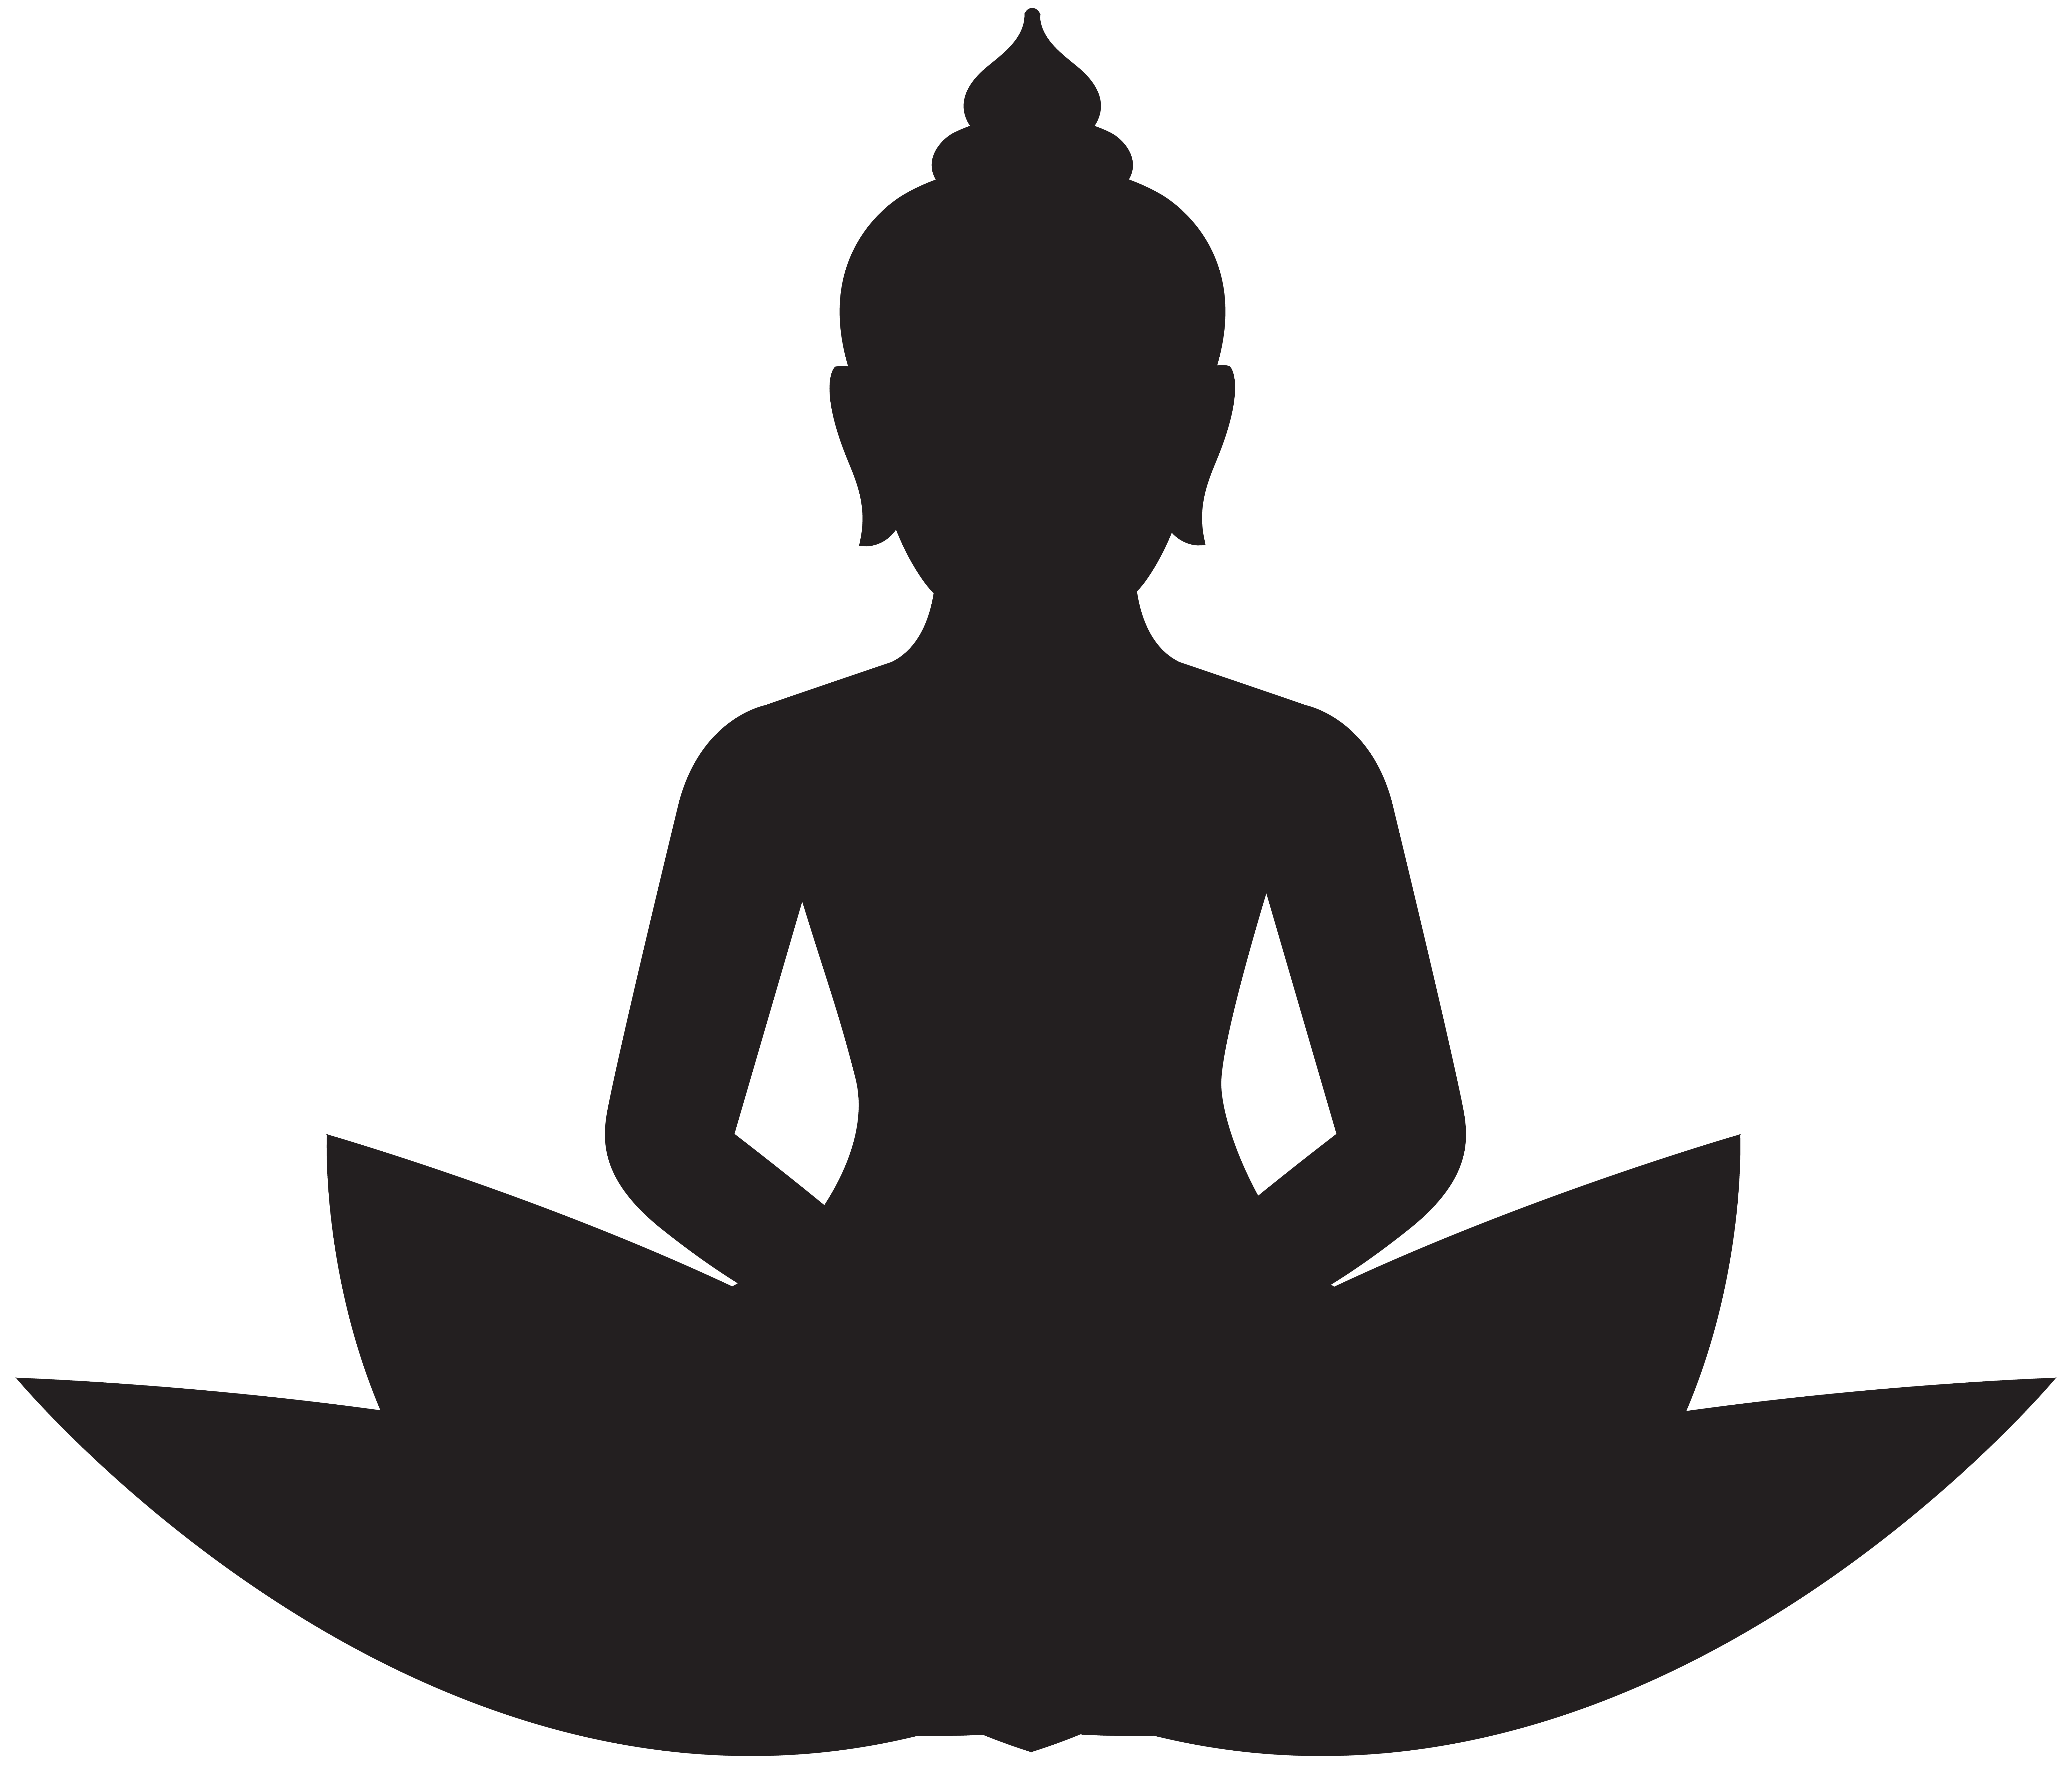 banner transparent stock Meditating silhouette png clip. Buddha clipart.